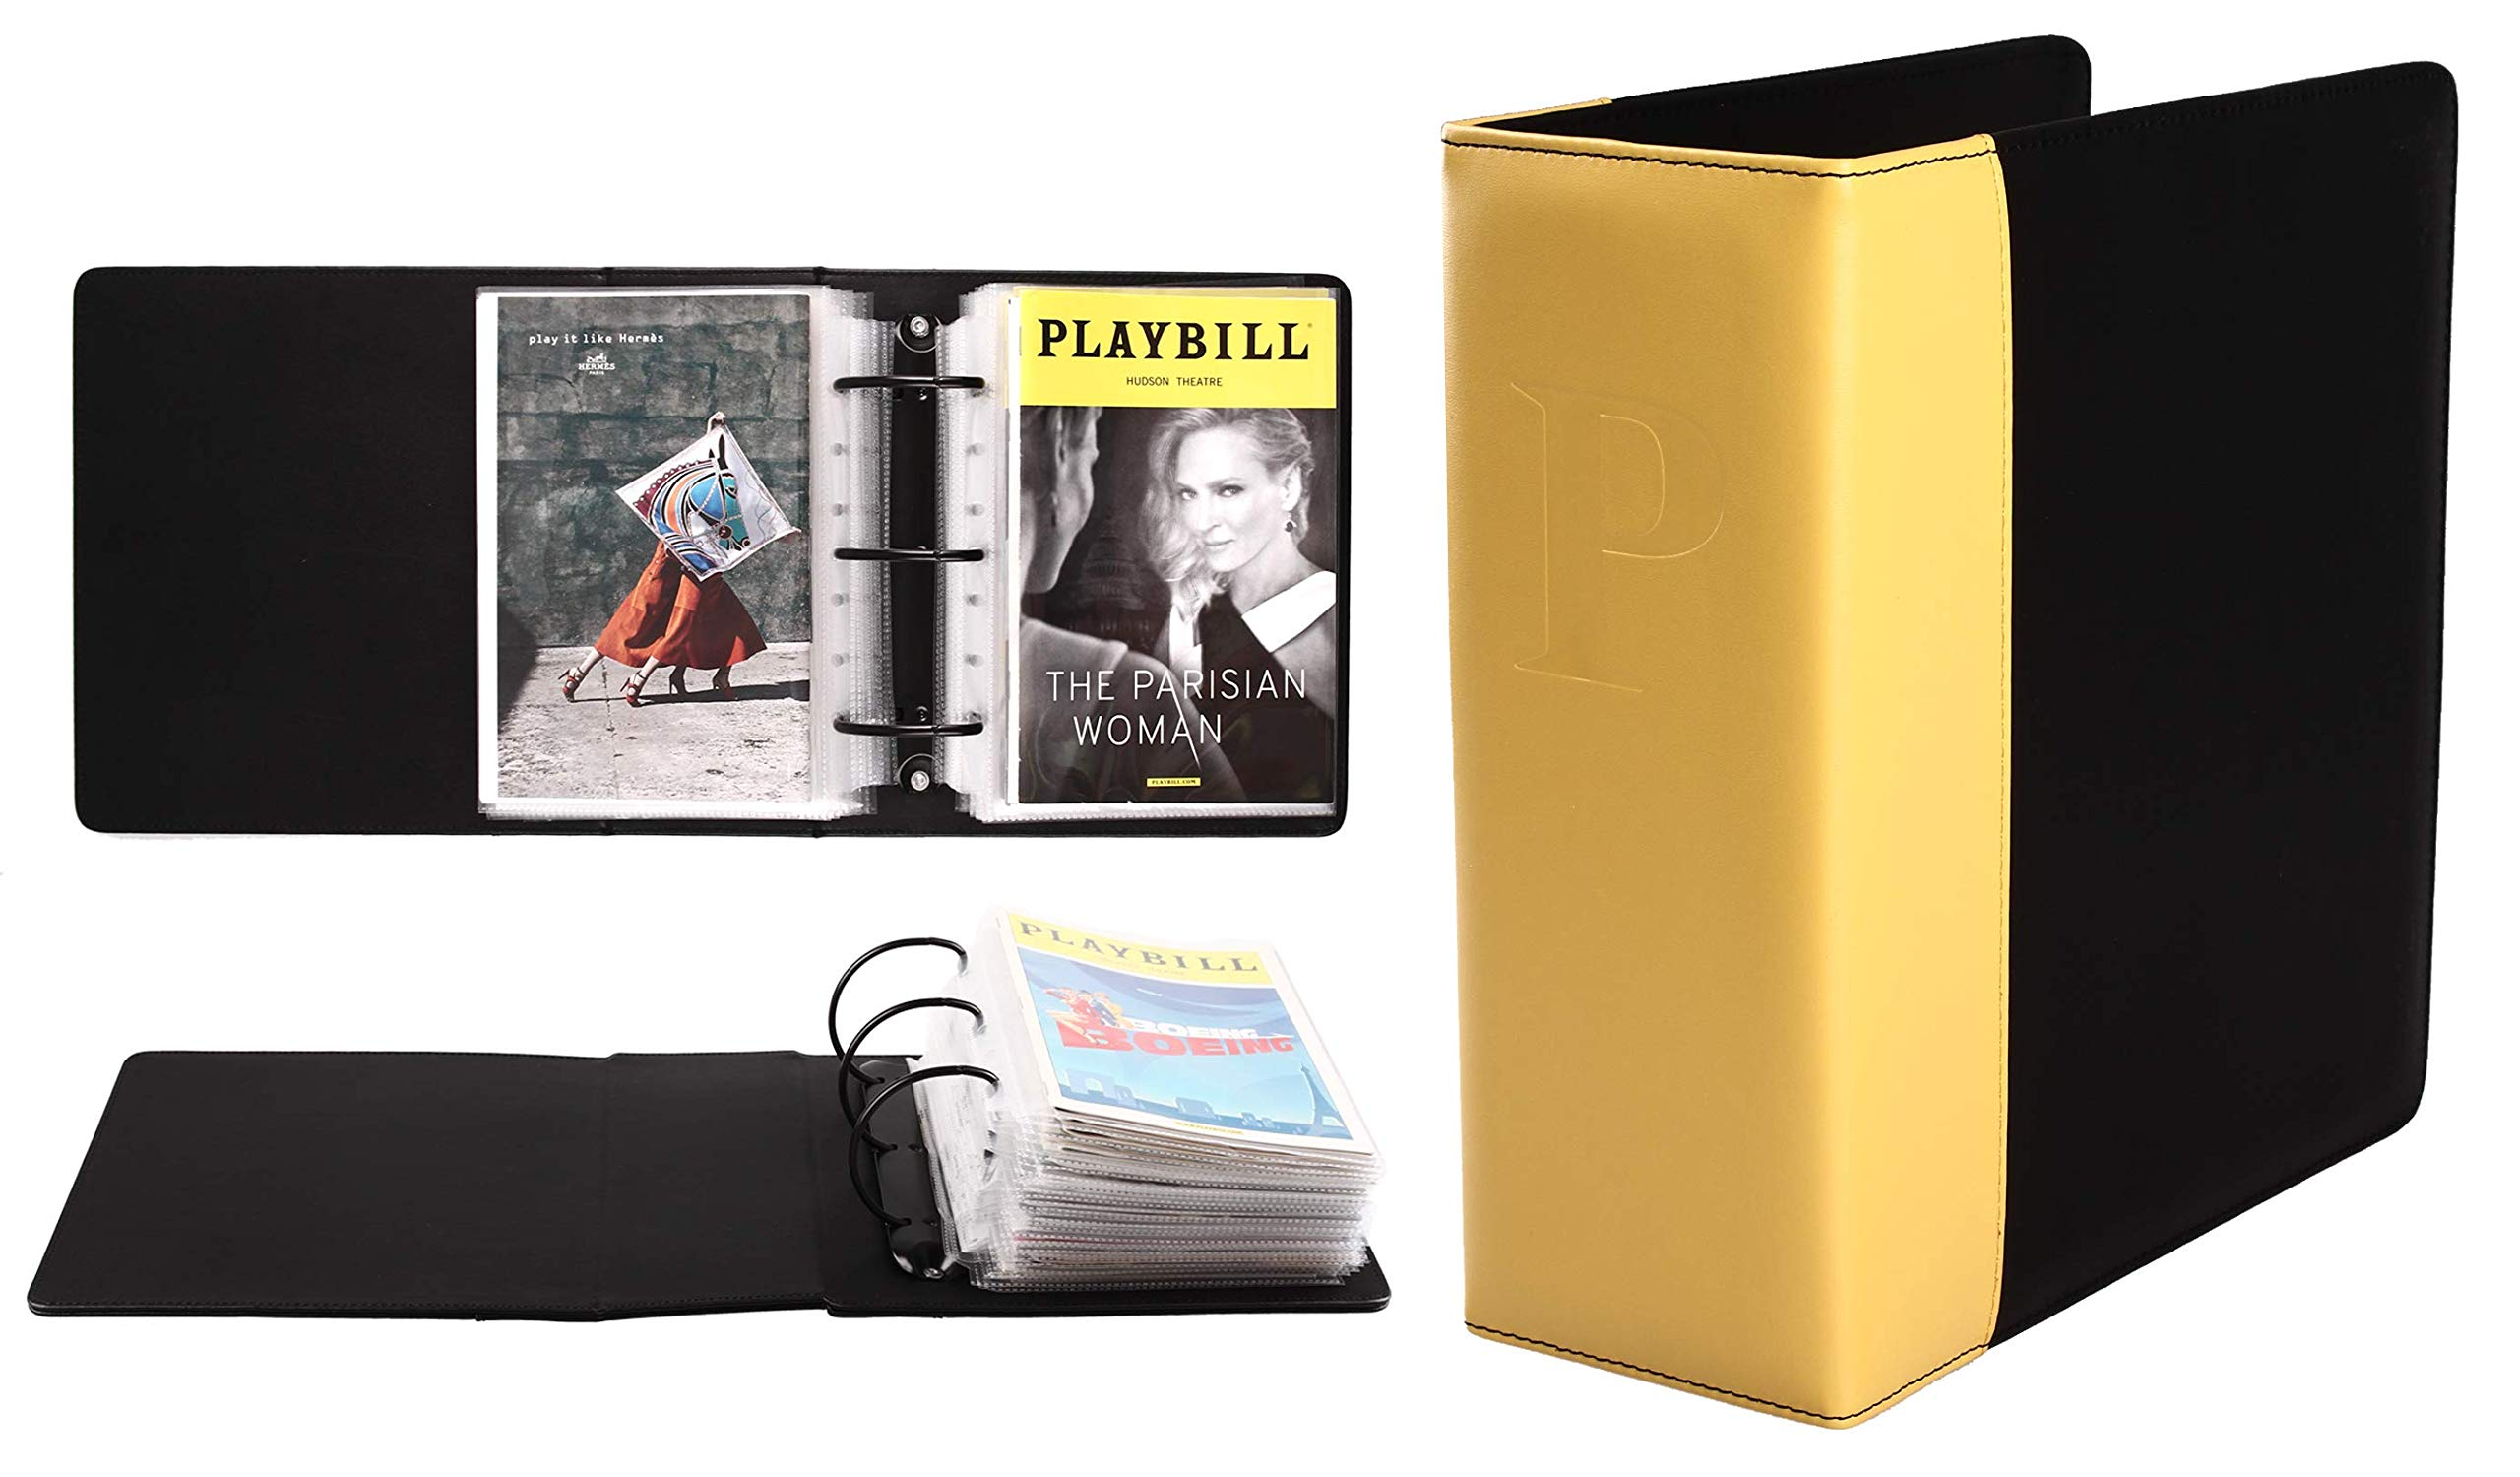 Broadway Play Program and Theater Playbill Binder with 30 Custom Sheet Protectors - PU Leather - Fits Playbills from Mid 1980s to Modern (Yellow/Black EmbossedP) by 2Fold Supply (Image #1)